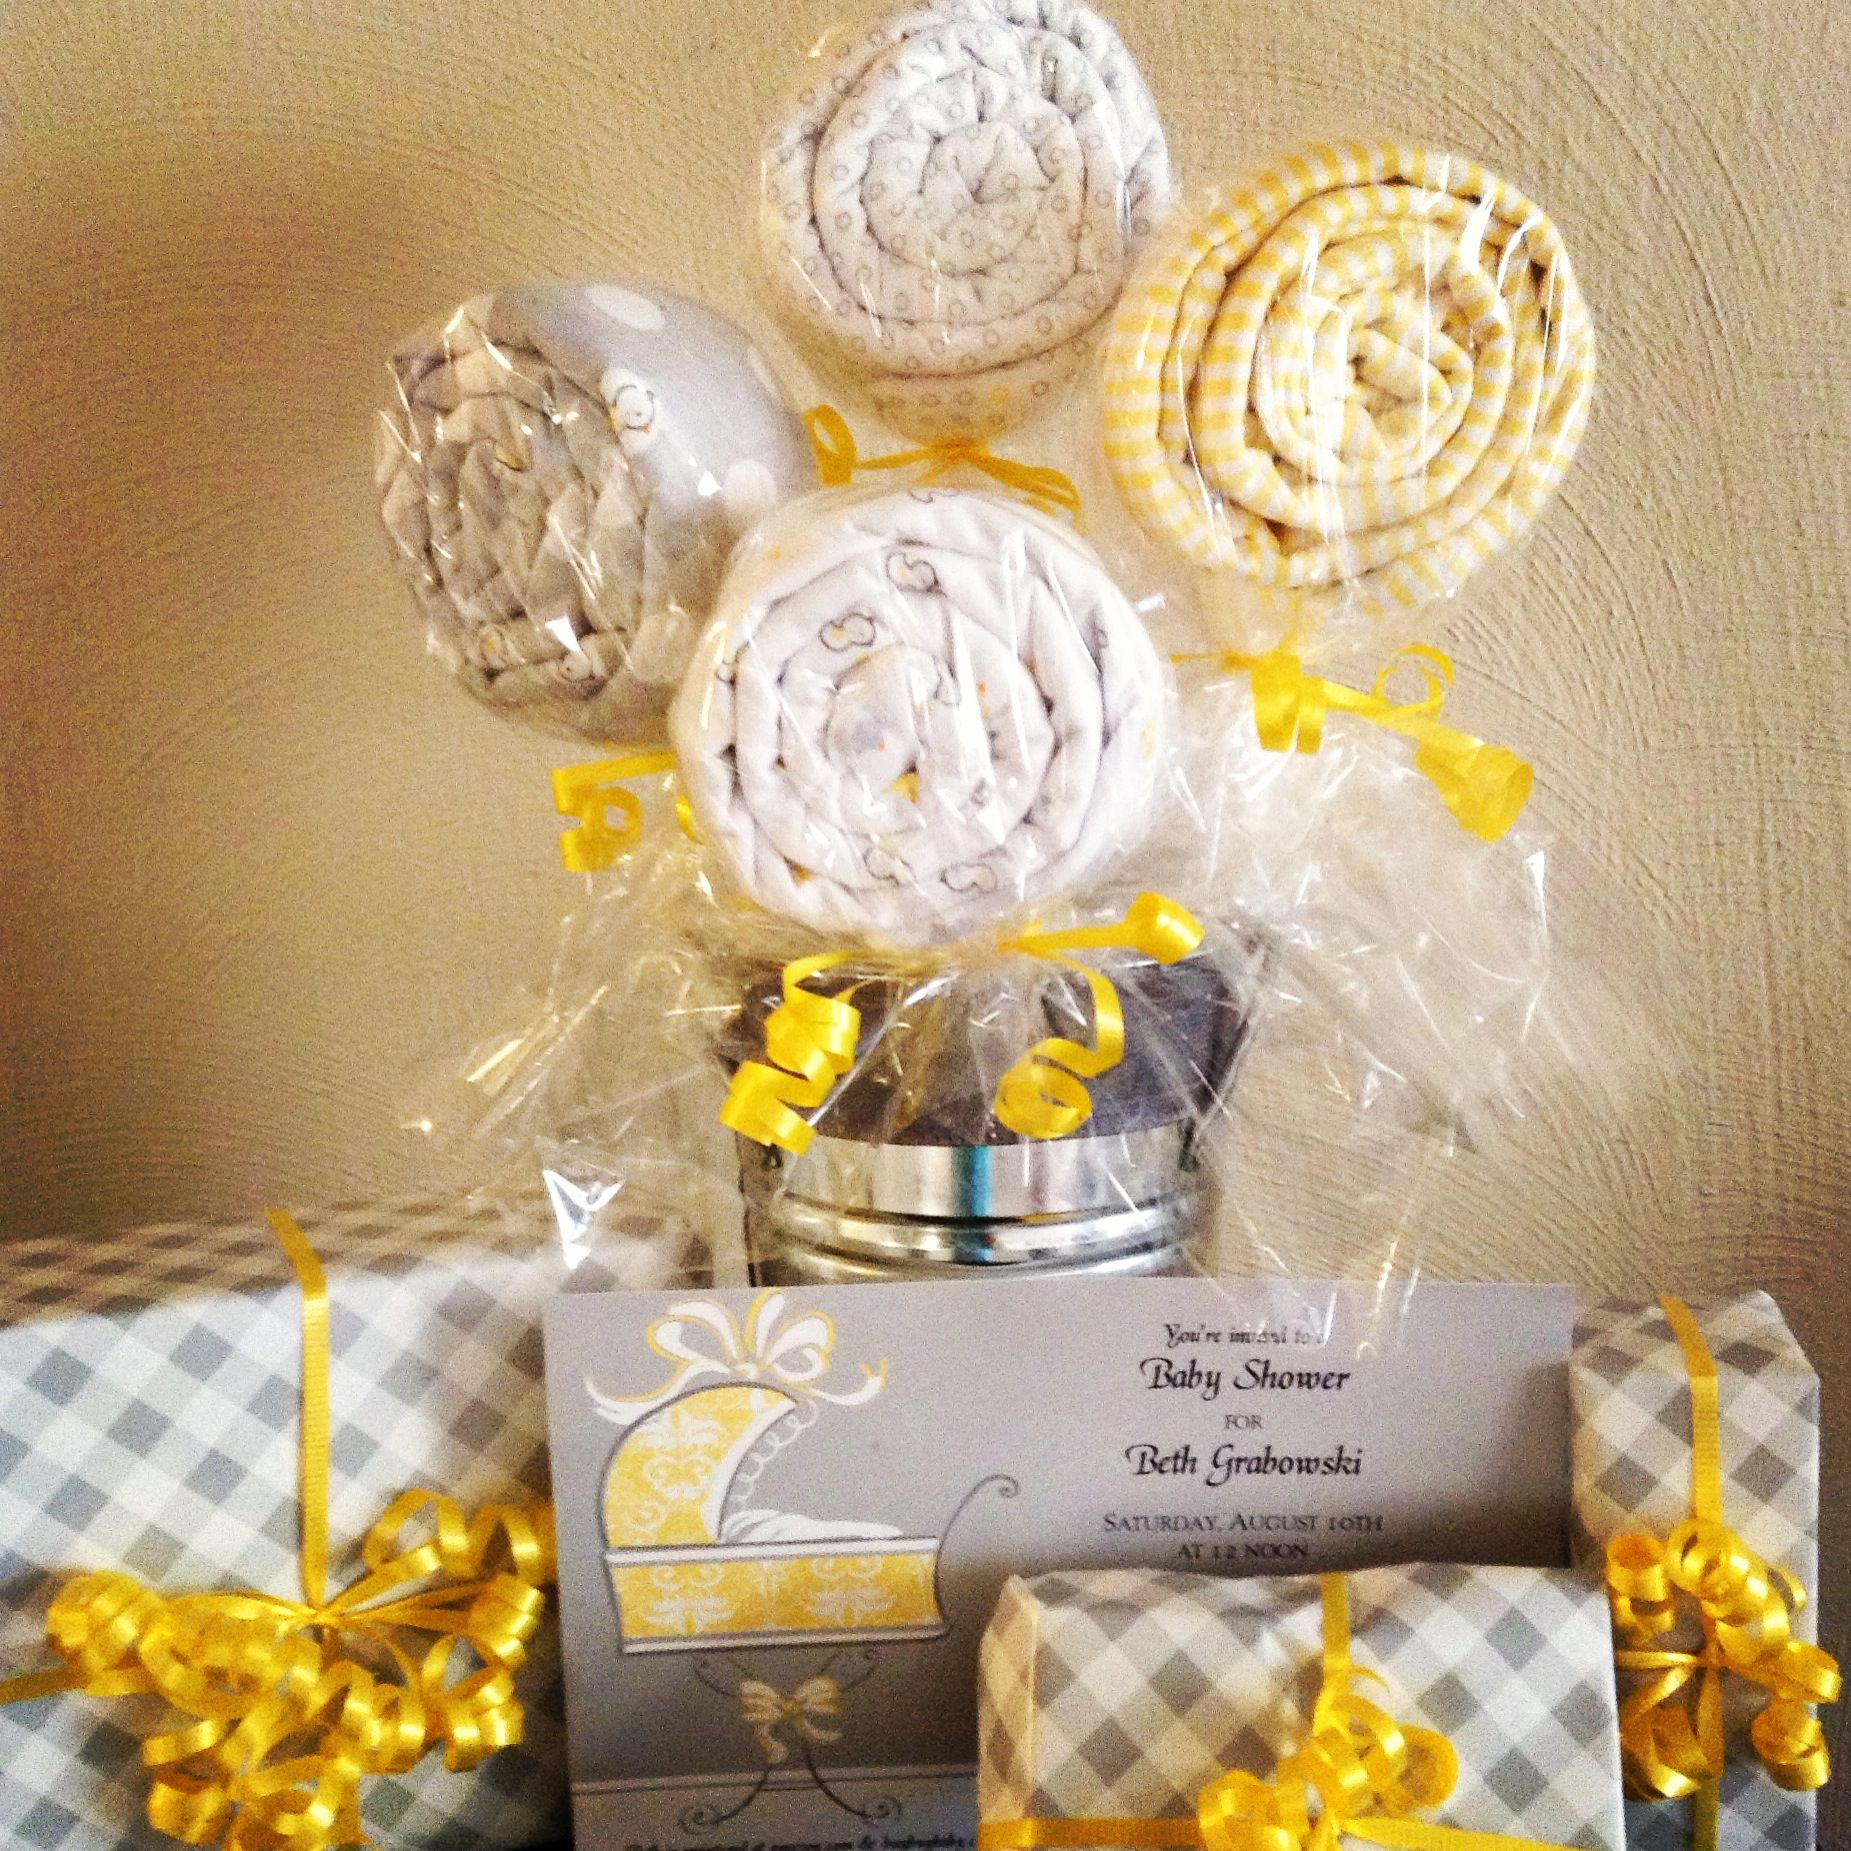 Gender neutral baby shower ideas - Gender Neutral Baby Shower Gray And Yellow